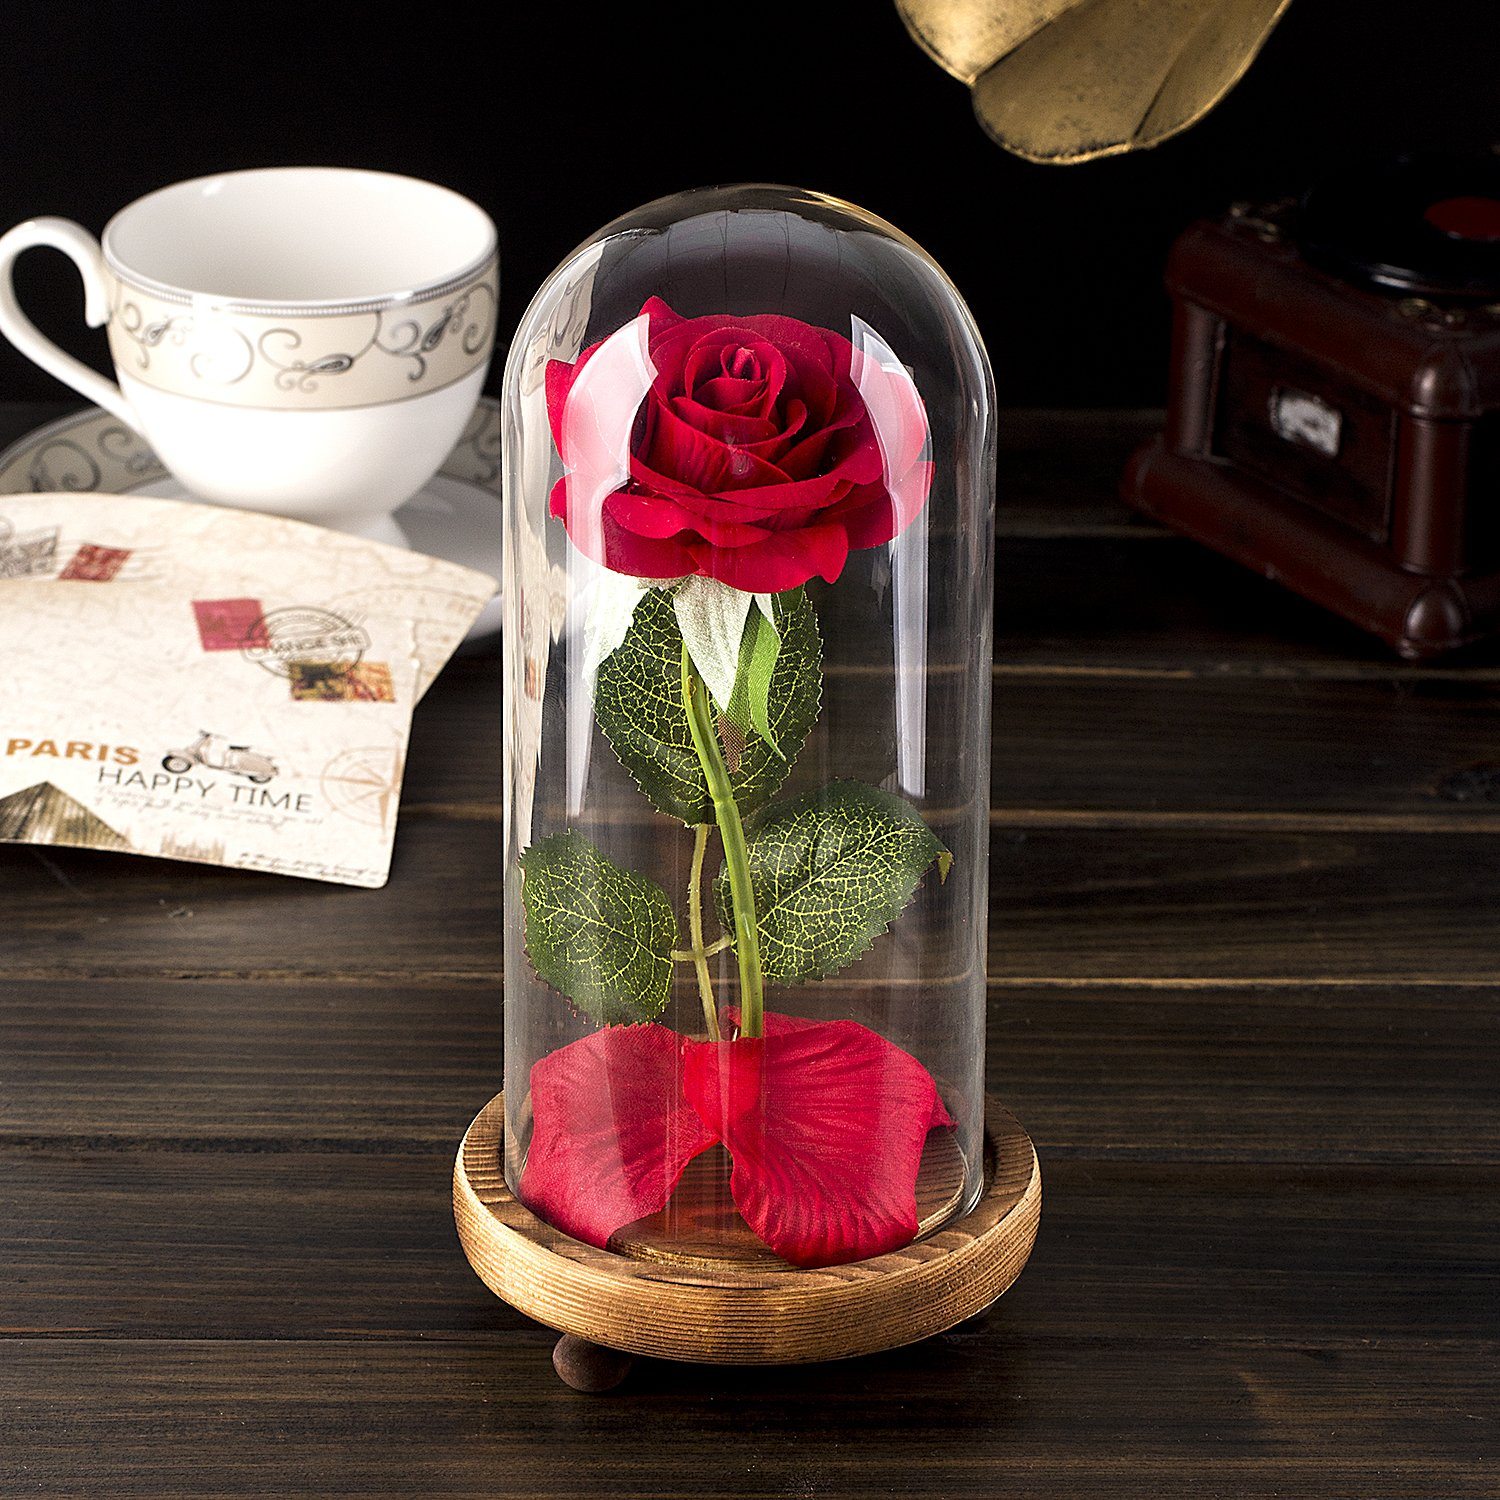 Amazon beauty and the beast rose kit red silk rose and led amazon beauty and the beast rose kit red silk rose and led light with fallen petals in glass dome on wooden base for home decor holiday party izmirmasajfo